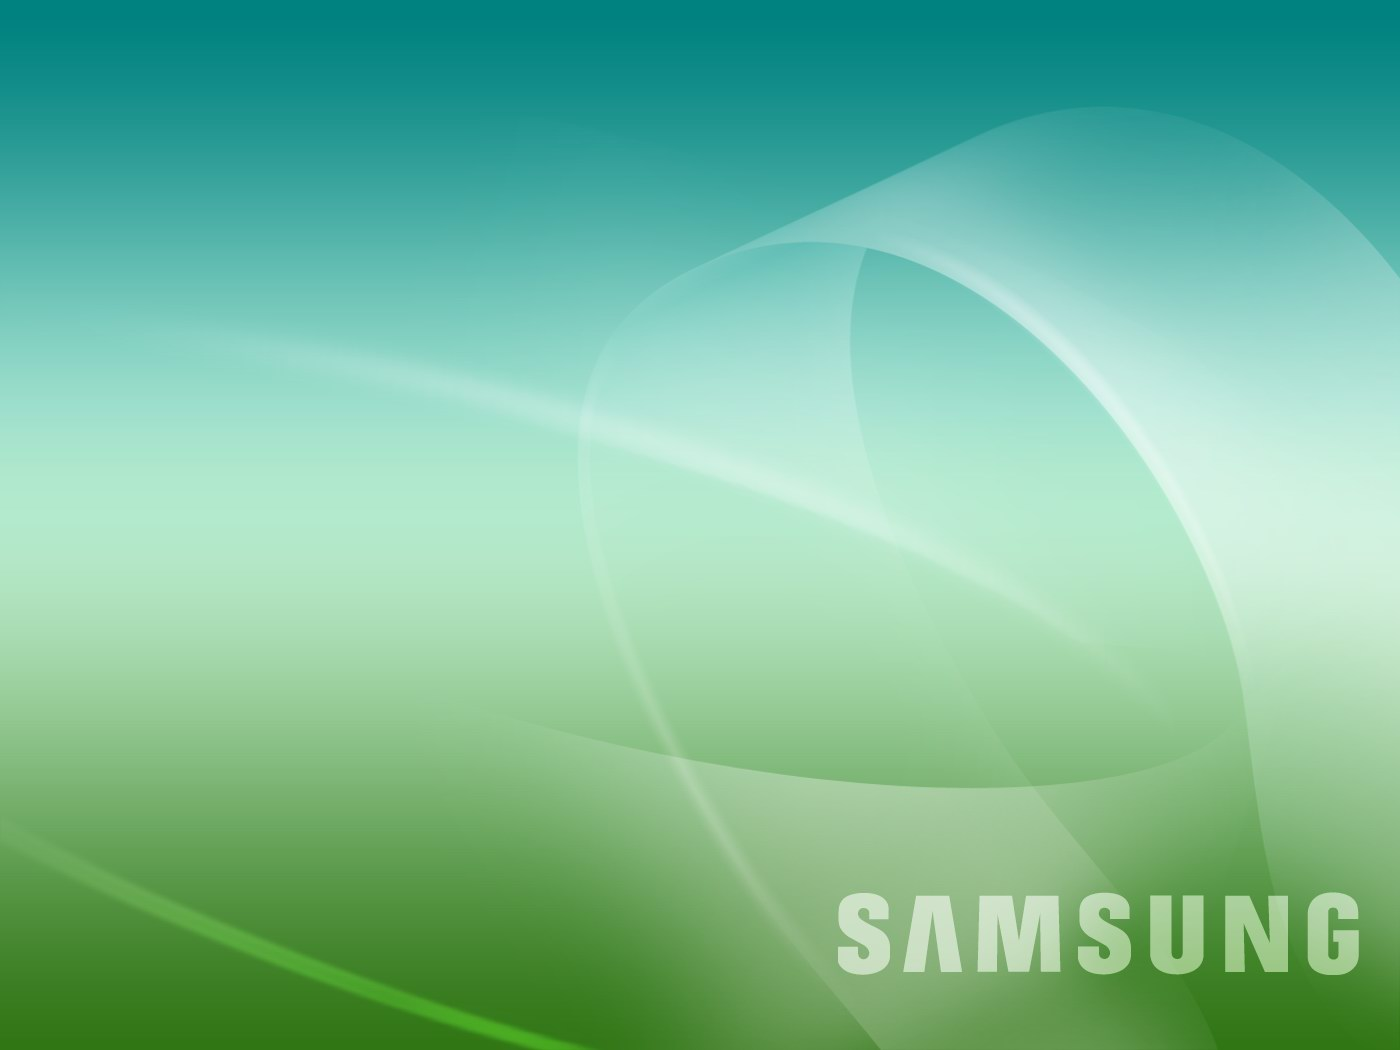 Samsung Wallpaper: Samsung Wallpapers For Computers